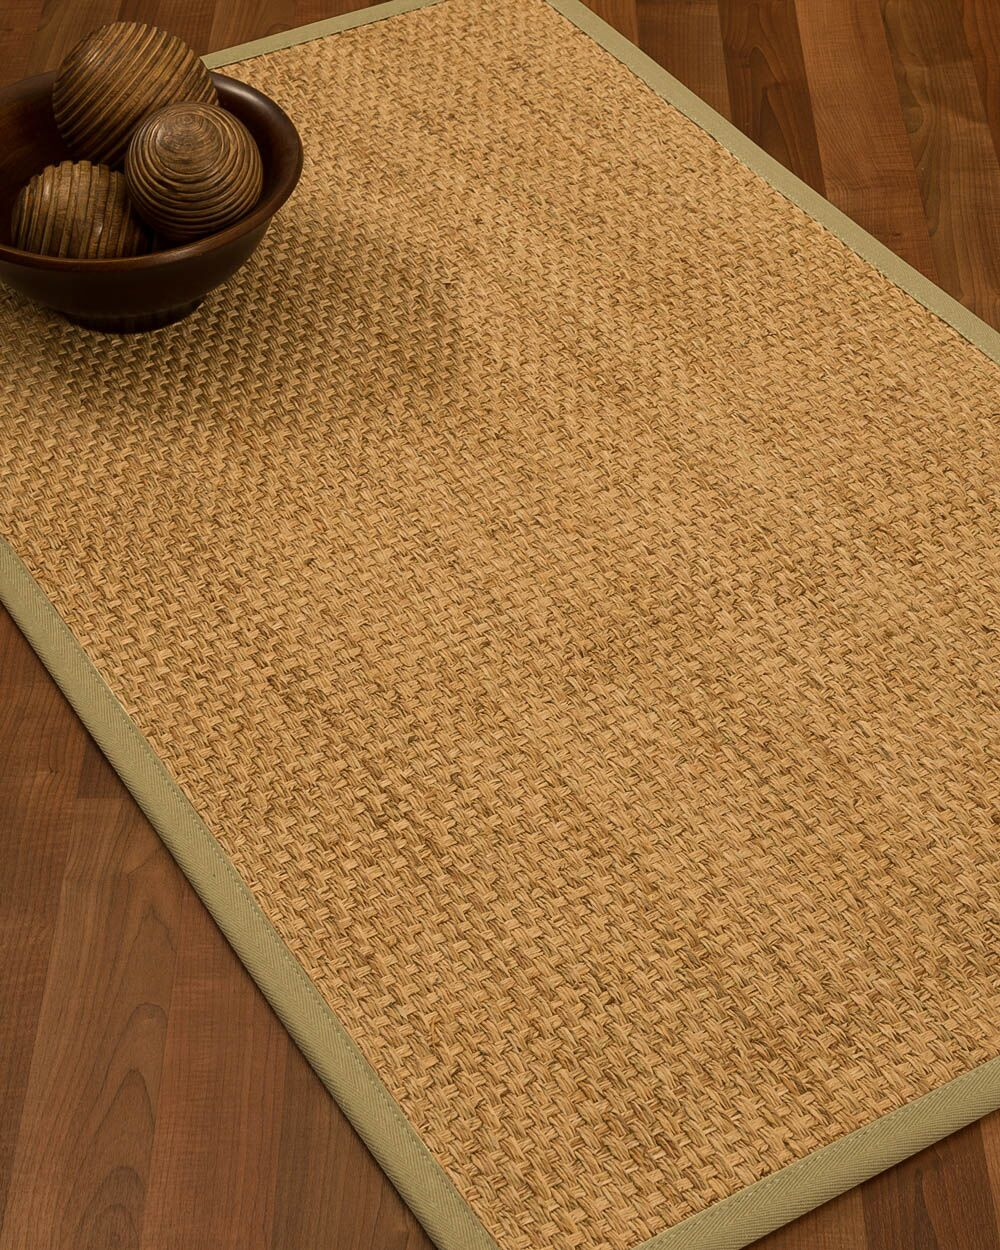 Caster Border Hand-Woven Beige/Sand Area Rug Rug Size: Rectangle 12' x 15', Rug Pad Included: Yes